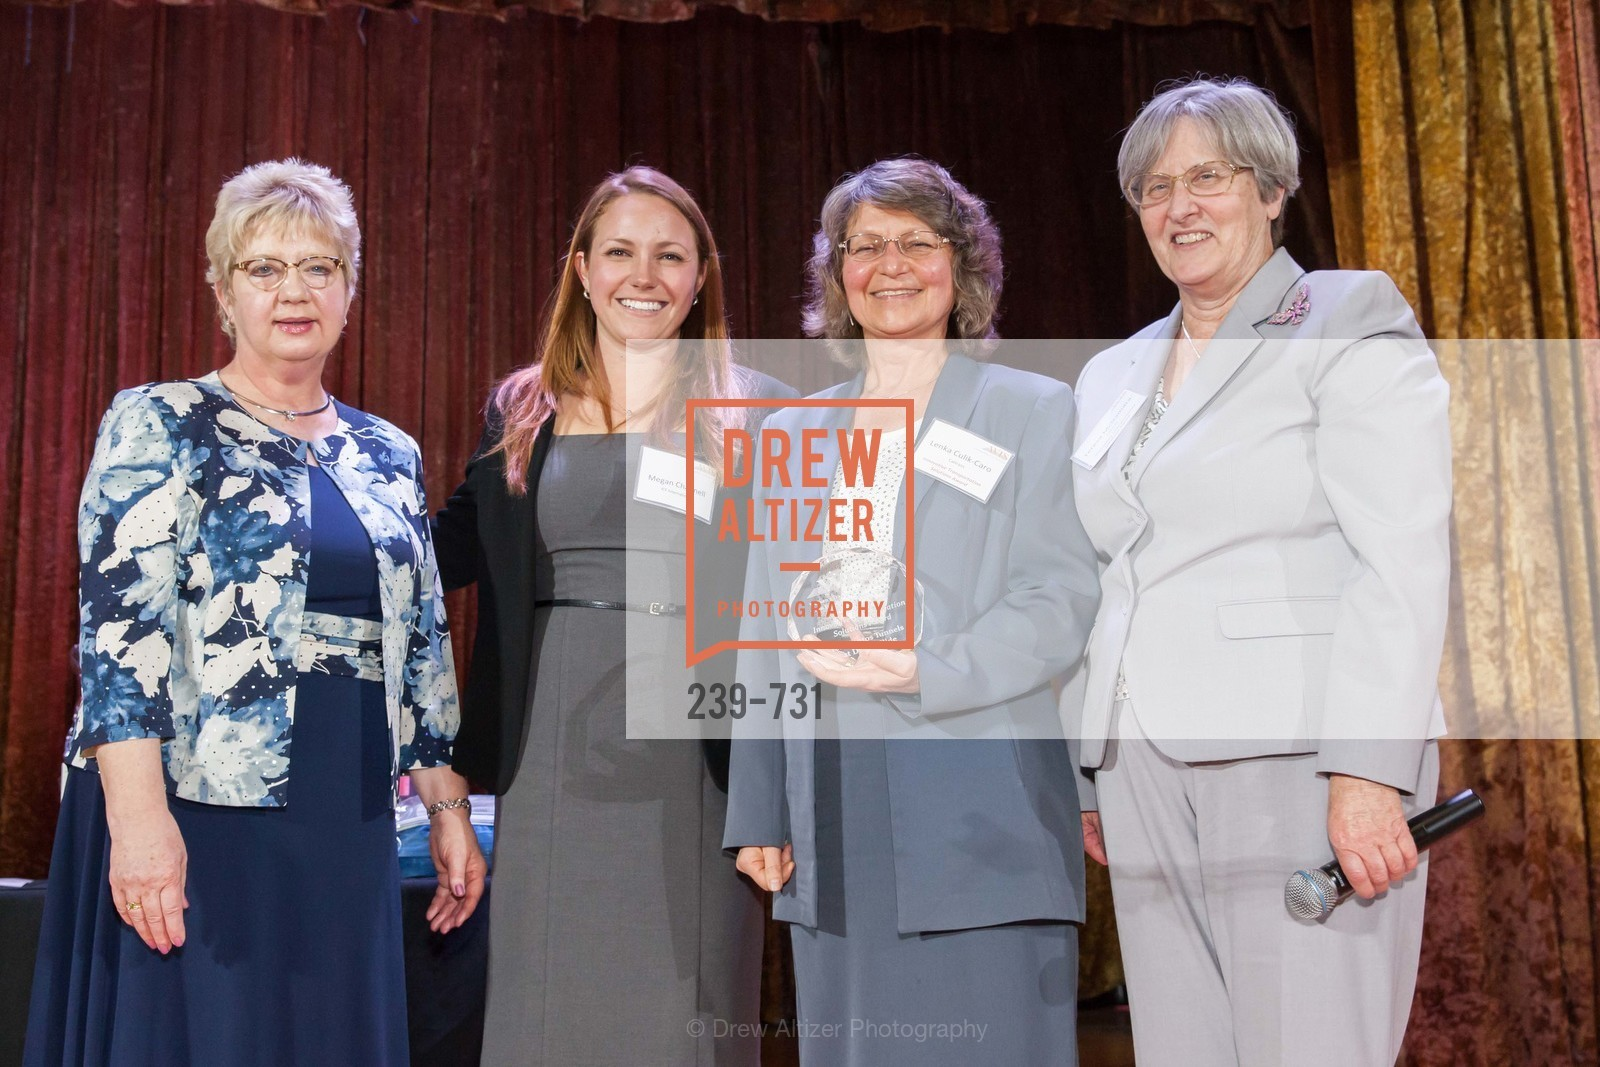 Darlene Gee, Megan Channell, Lenka Culik-Caro, WOMEN'S TRANSPORTATION SEMINAR SF Bay Area Chapter Annual Scholarship Awards, US, May 15th, 2015,Drew Altizer, Drew Altizer Photography, full-service agency, private events, San Francisco photographer, photographer california